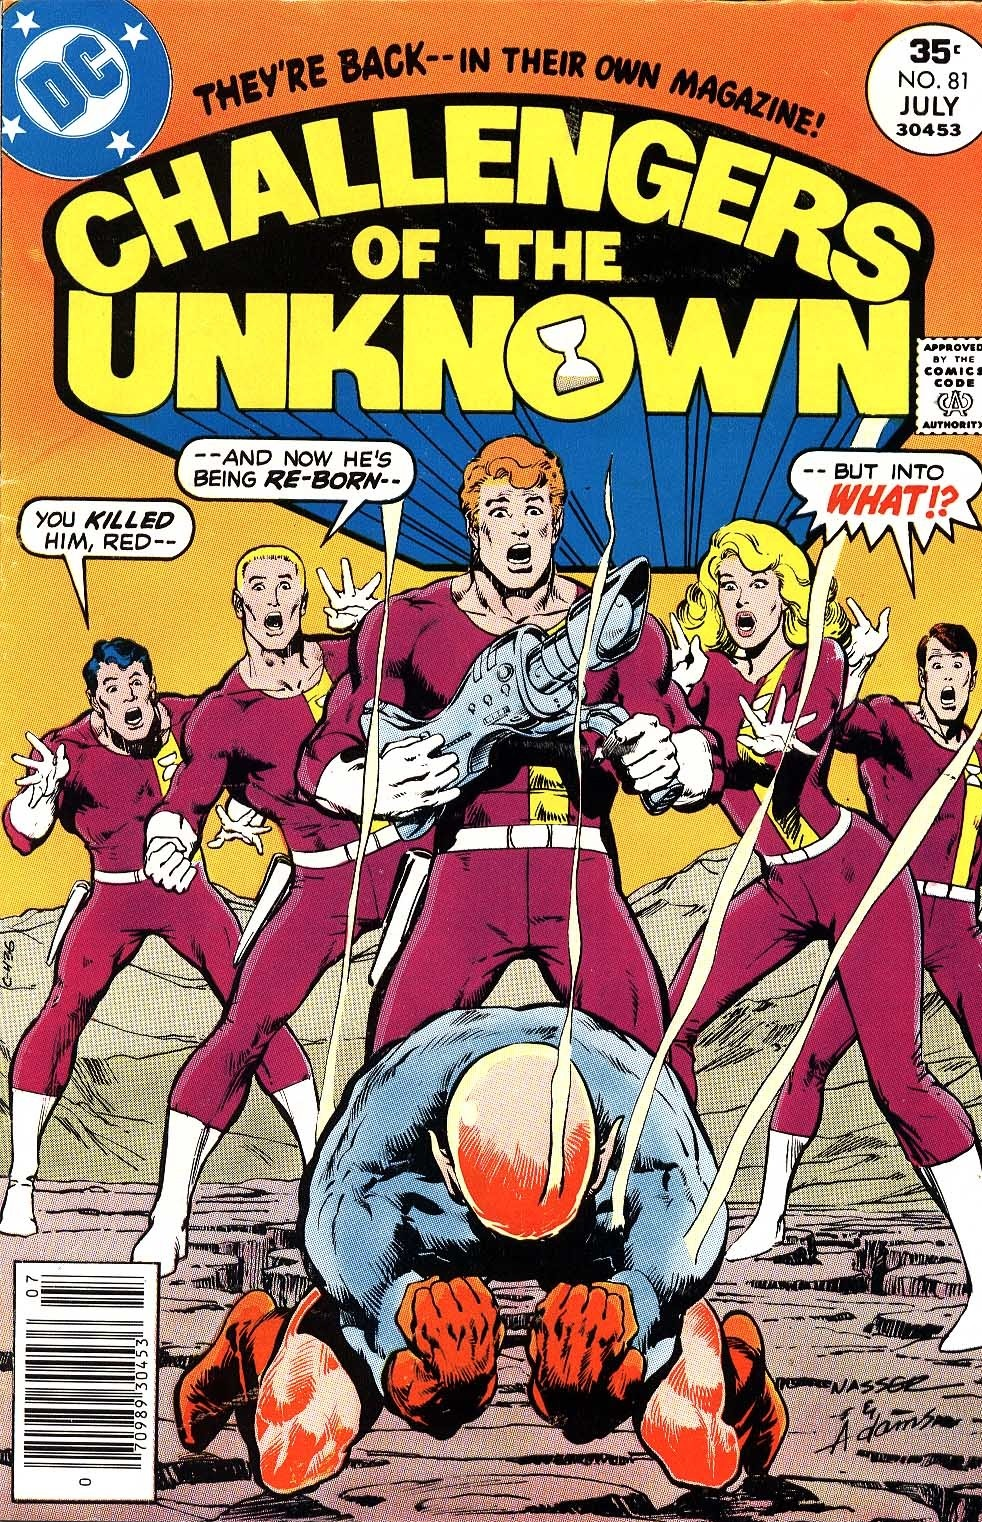 Challengers of the Unknown (1958) #81, cover penciled by Mike Nasser & inked by Neal Adams.